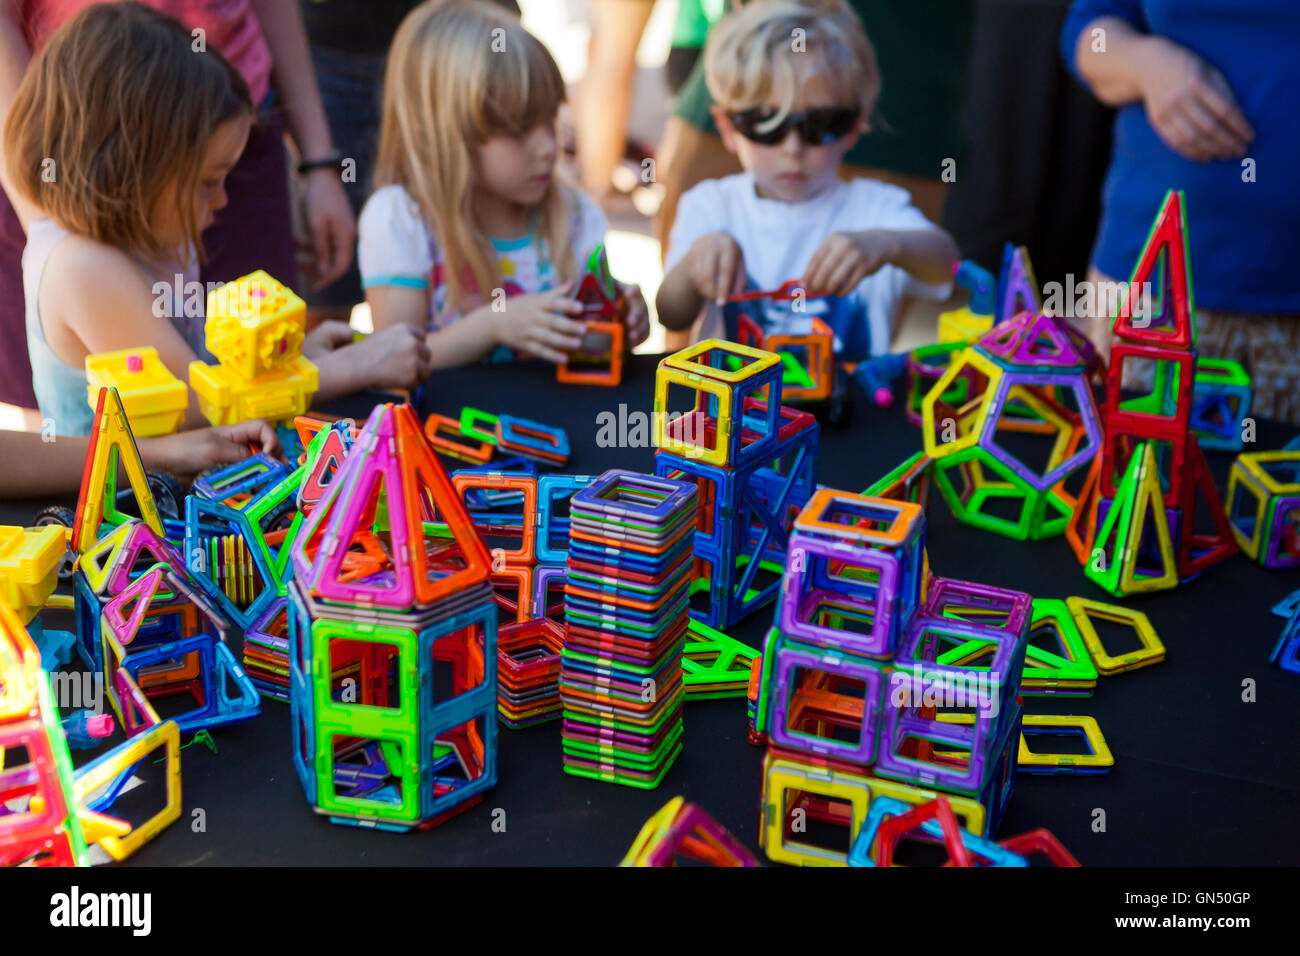 Children playing with Magformers magnetic building toy - USA - Stock Image